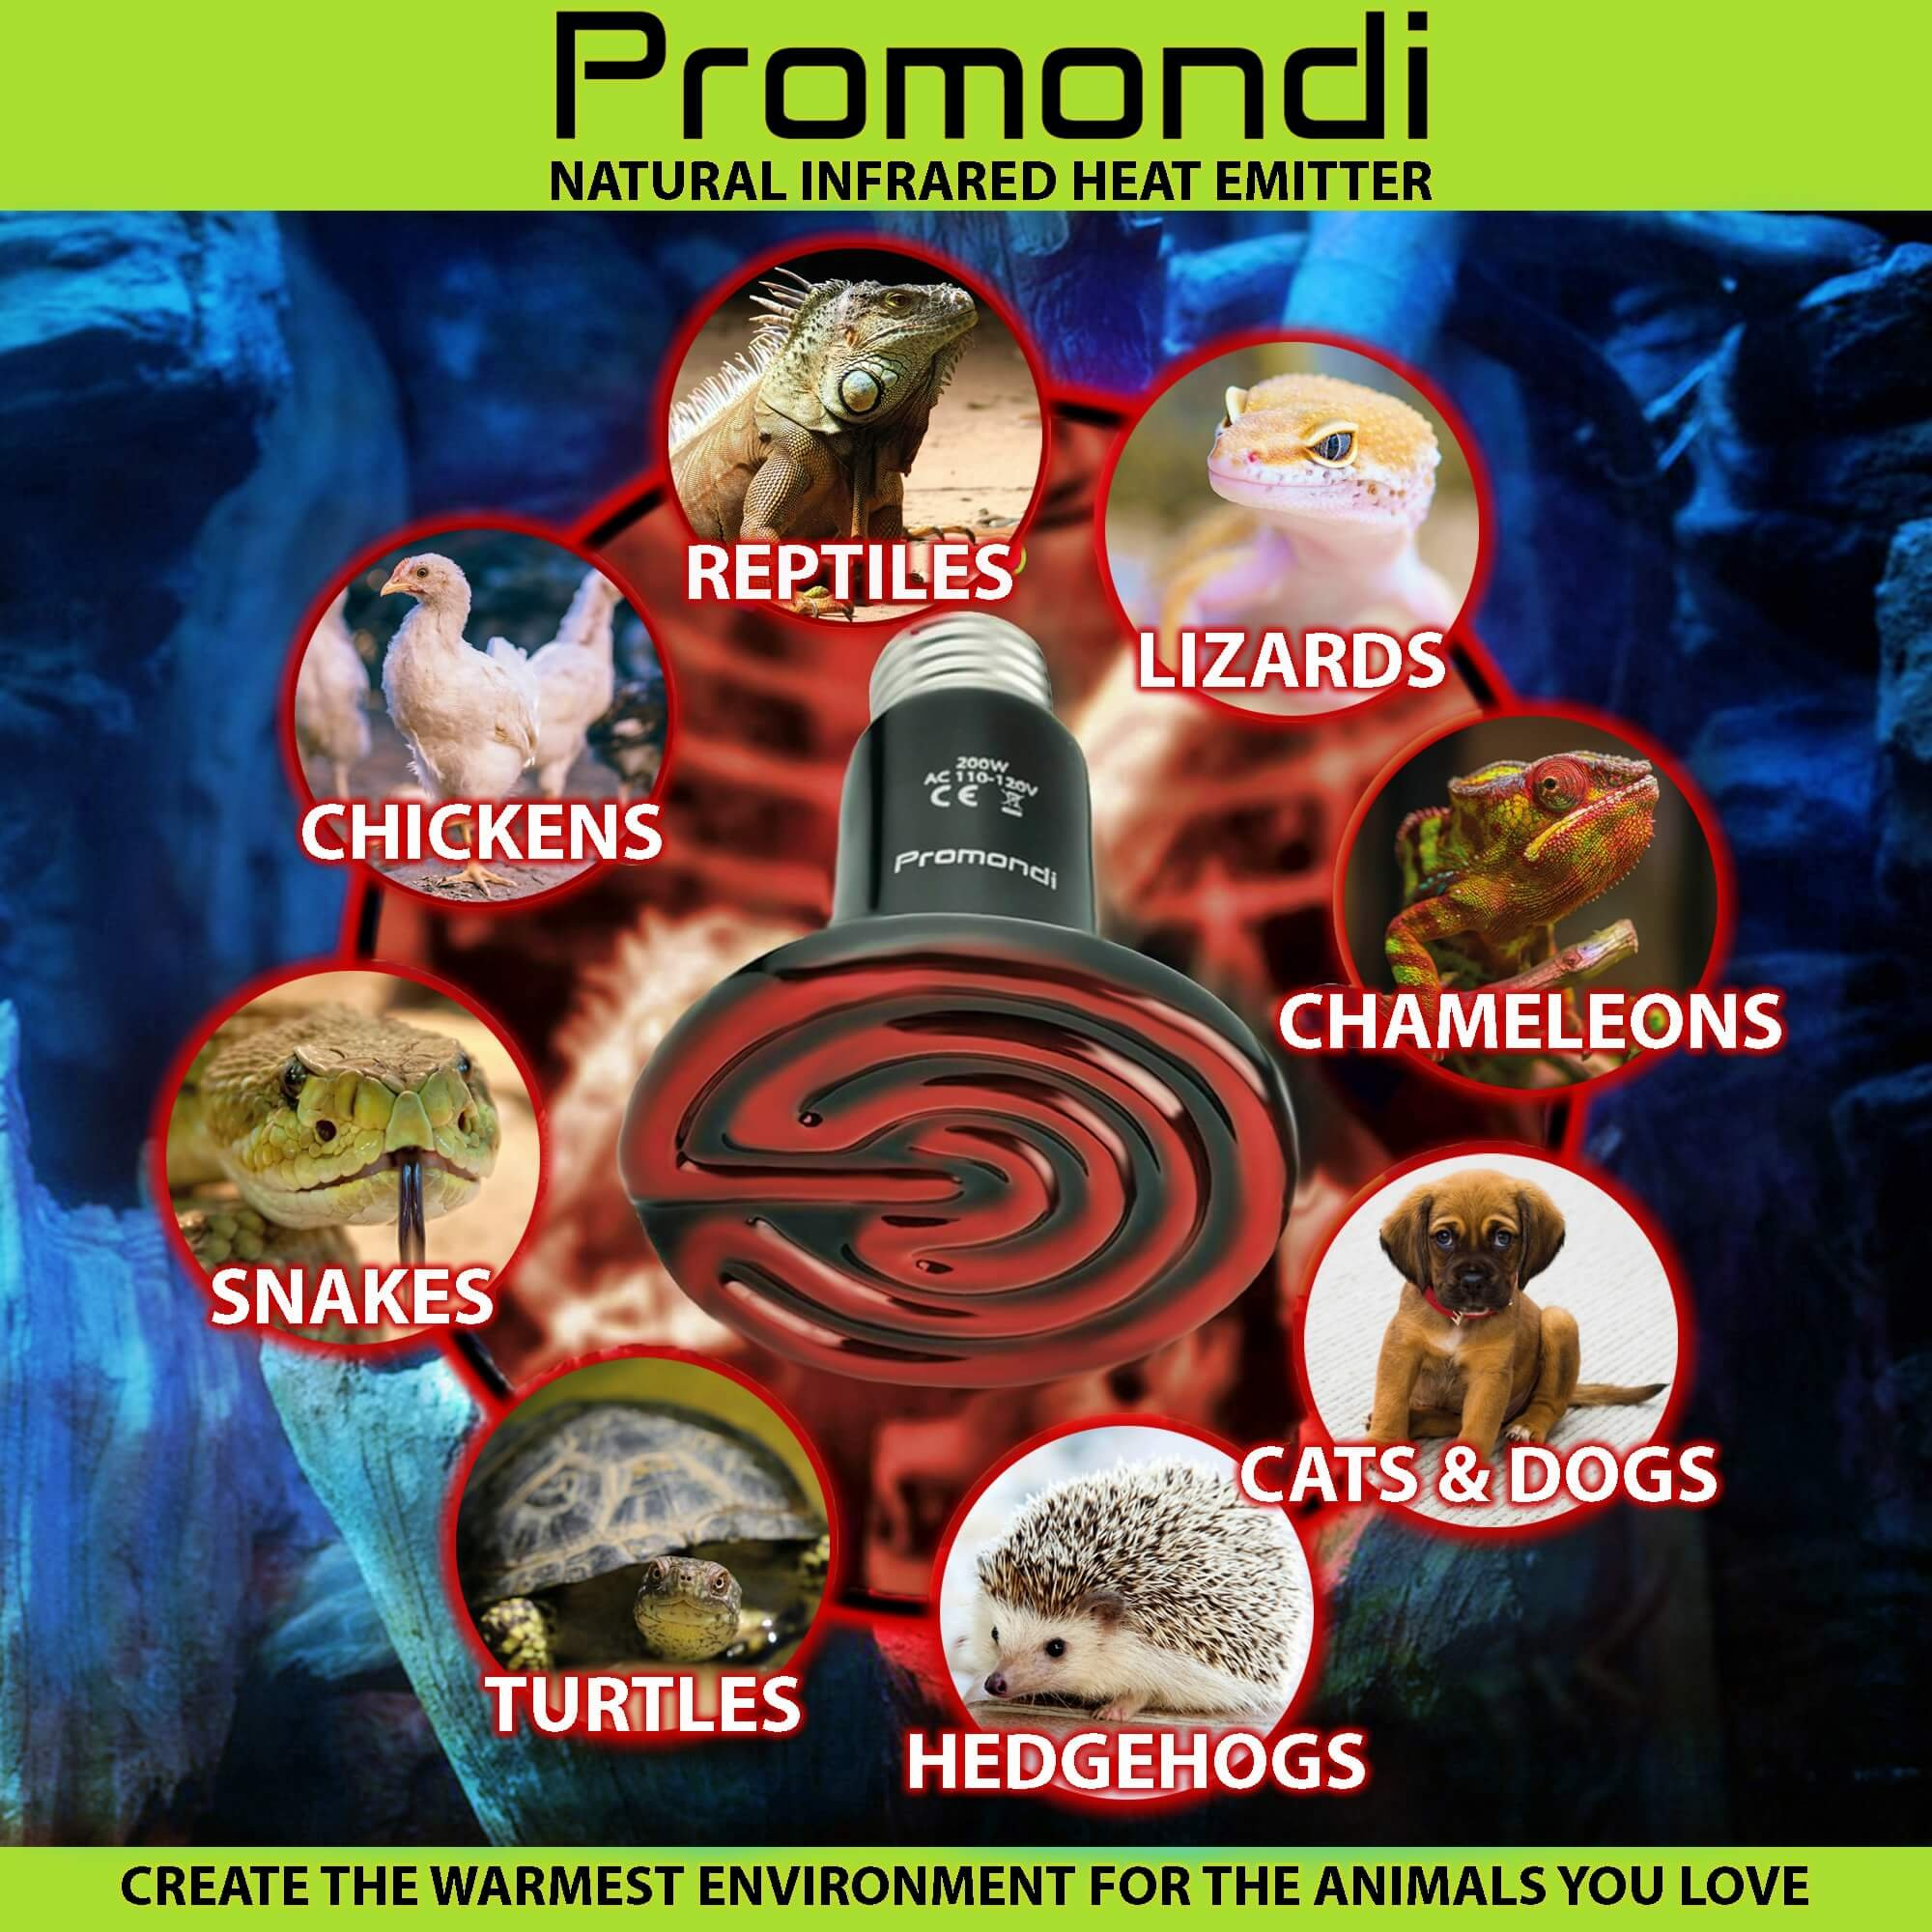 Ceramic Infrared Heat Emitter Lamp 200W | Reptile Brooder Chicken Coop Outdoor Pet Heater Bulb | 20,000+ Hours Power Lamps by Promondi by Promondi (Image #2)